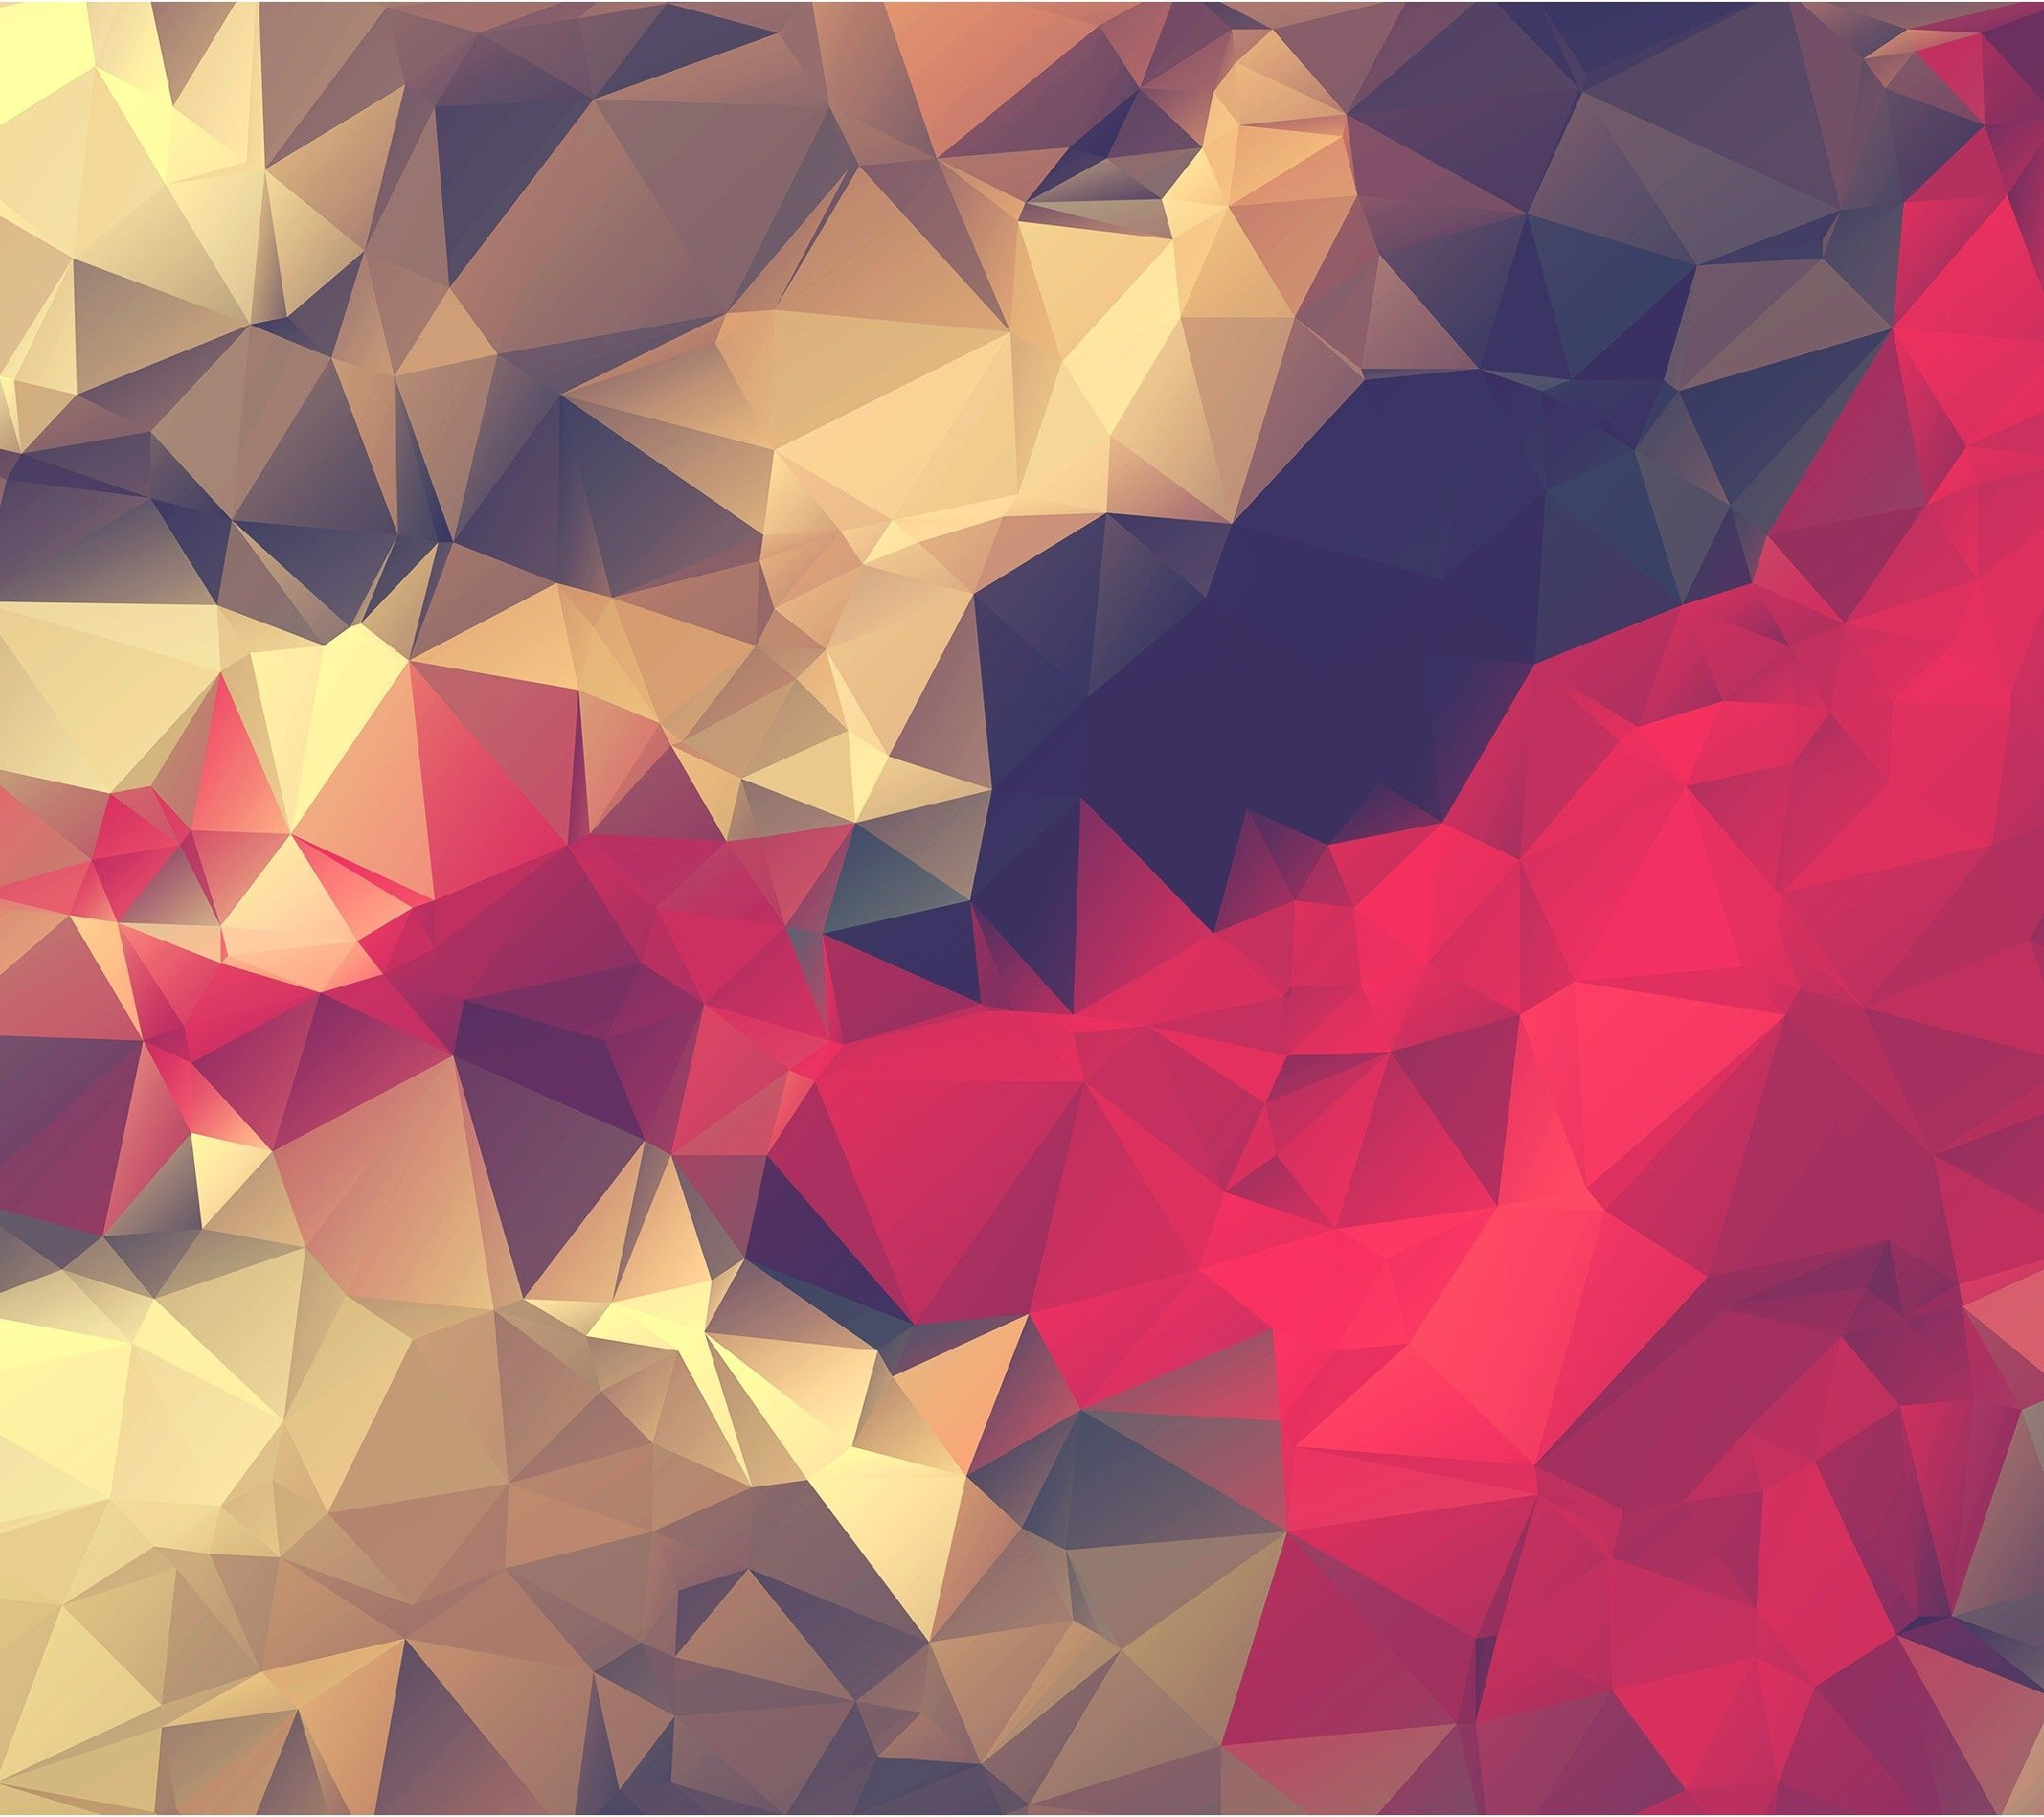 Res: 2160x1920, Red Smoke Abstract - Tap to see more of the best low polygon geometric wallpapers! - @mobile9